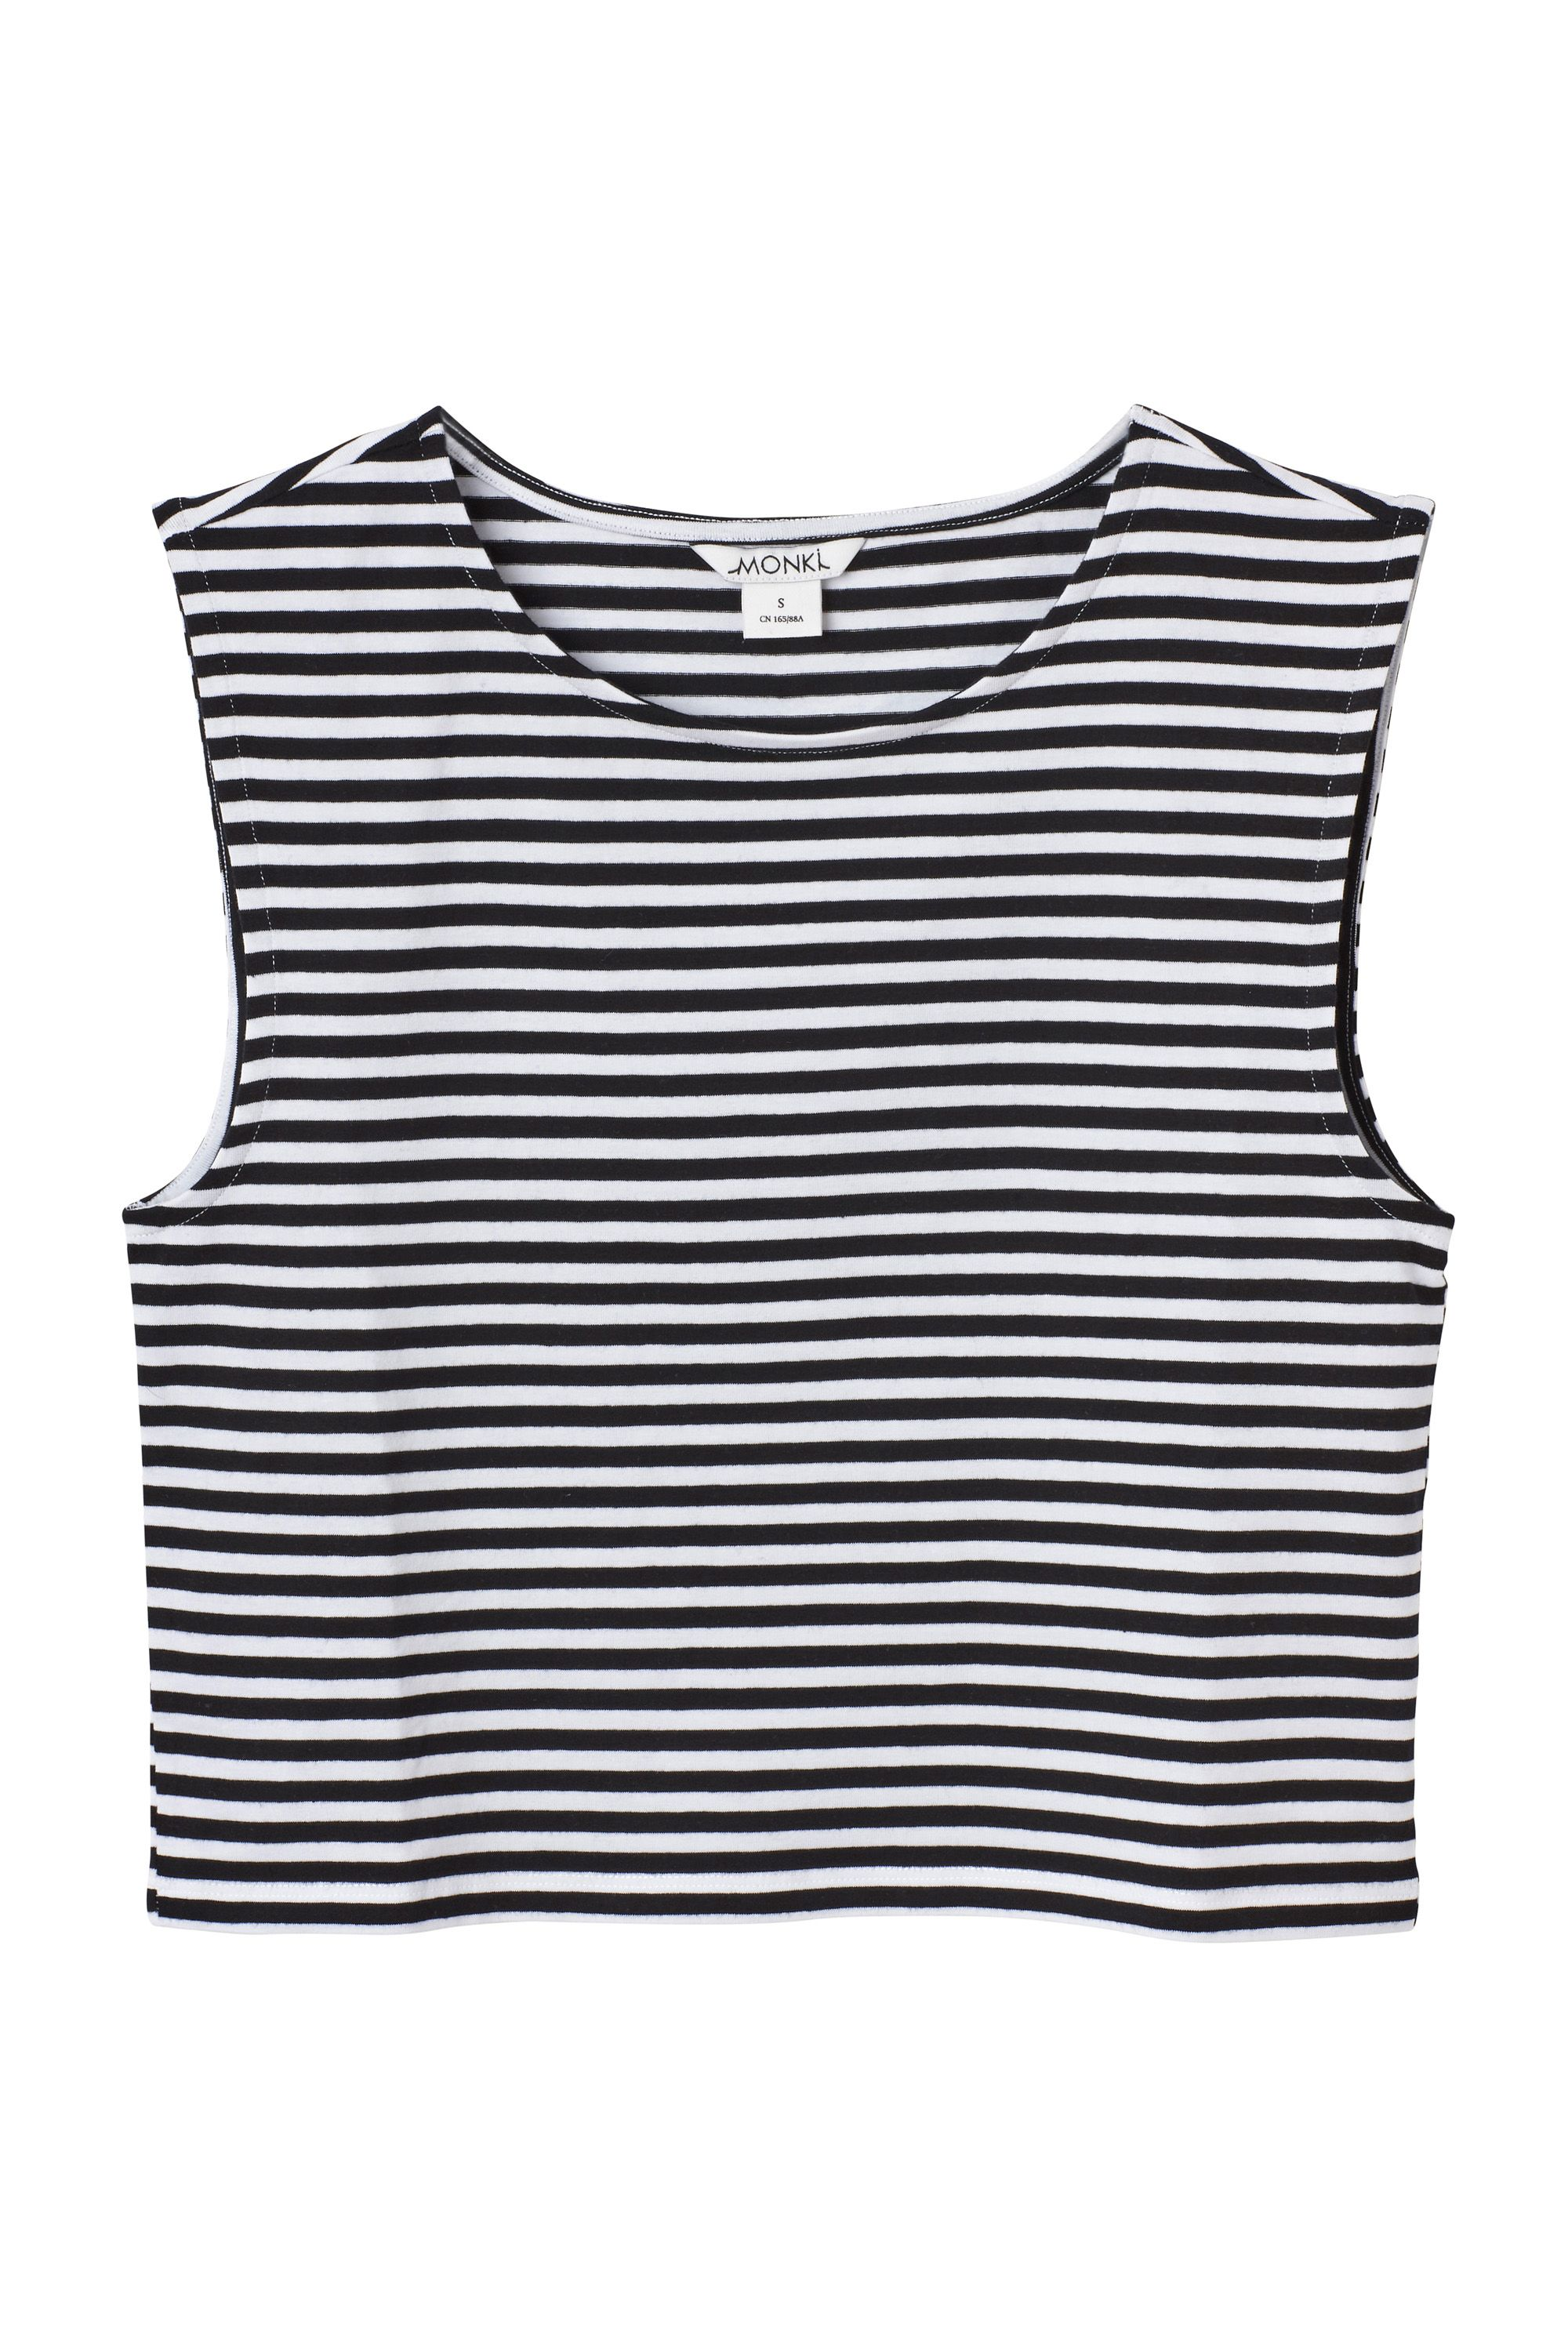 8a0b2f3d1 More BNW Stripes Black And White Tops, Statement Tees, Latest Tops, Monki,